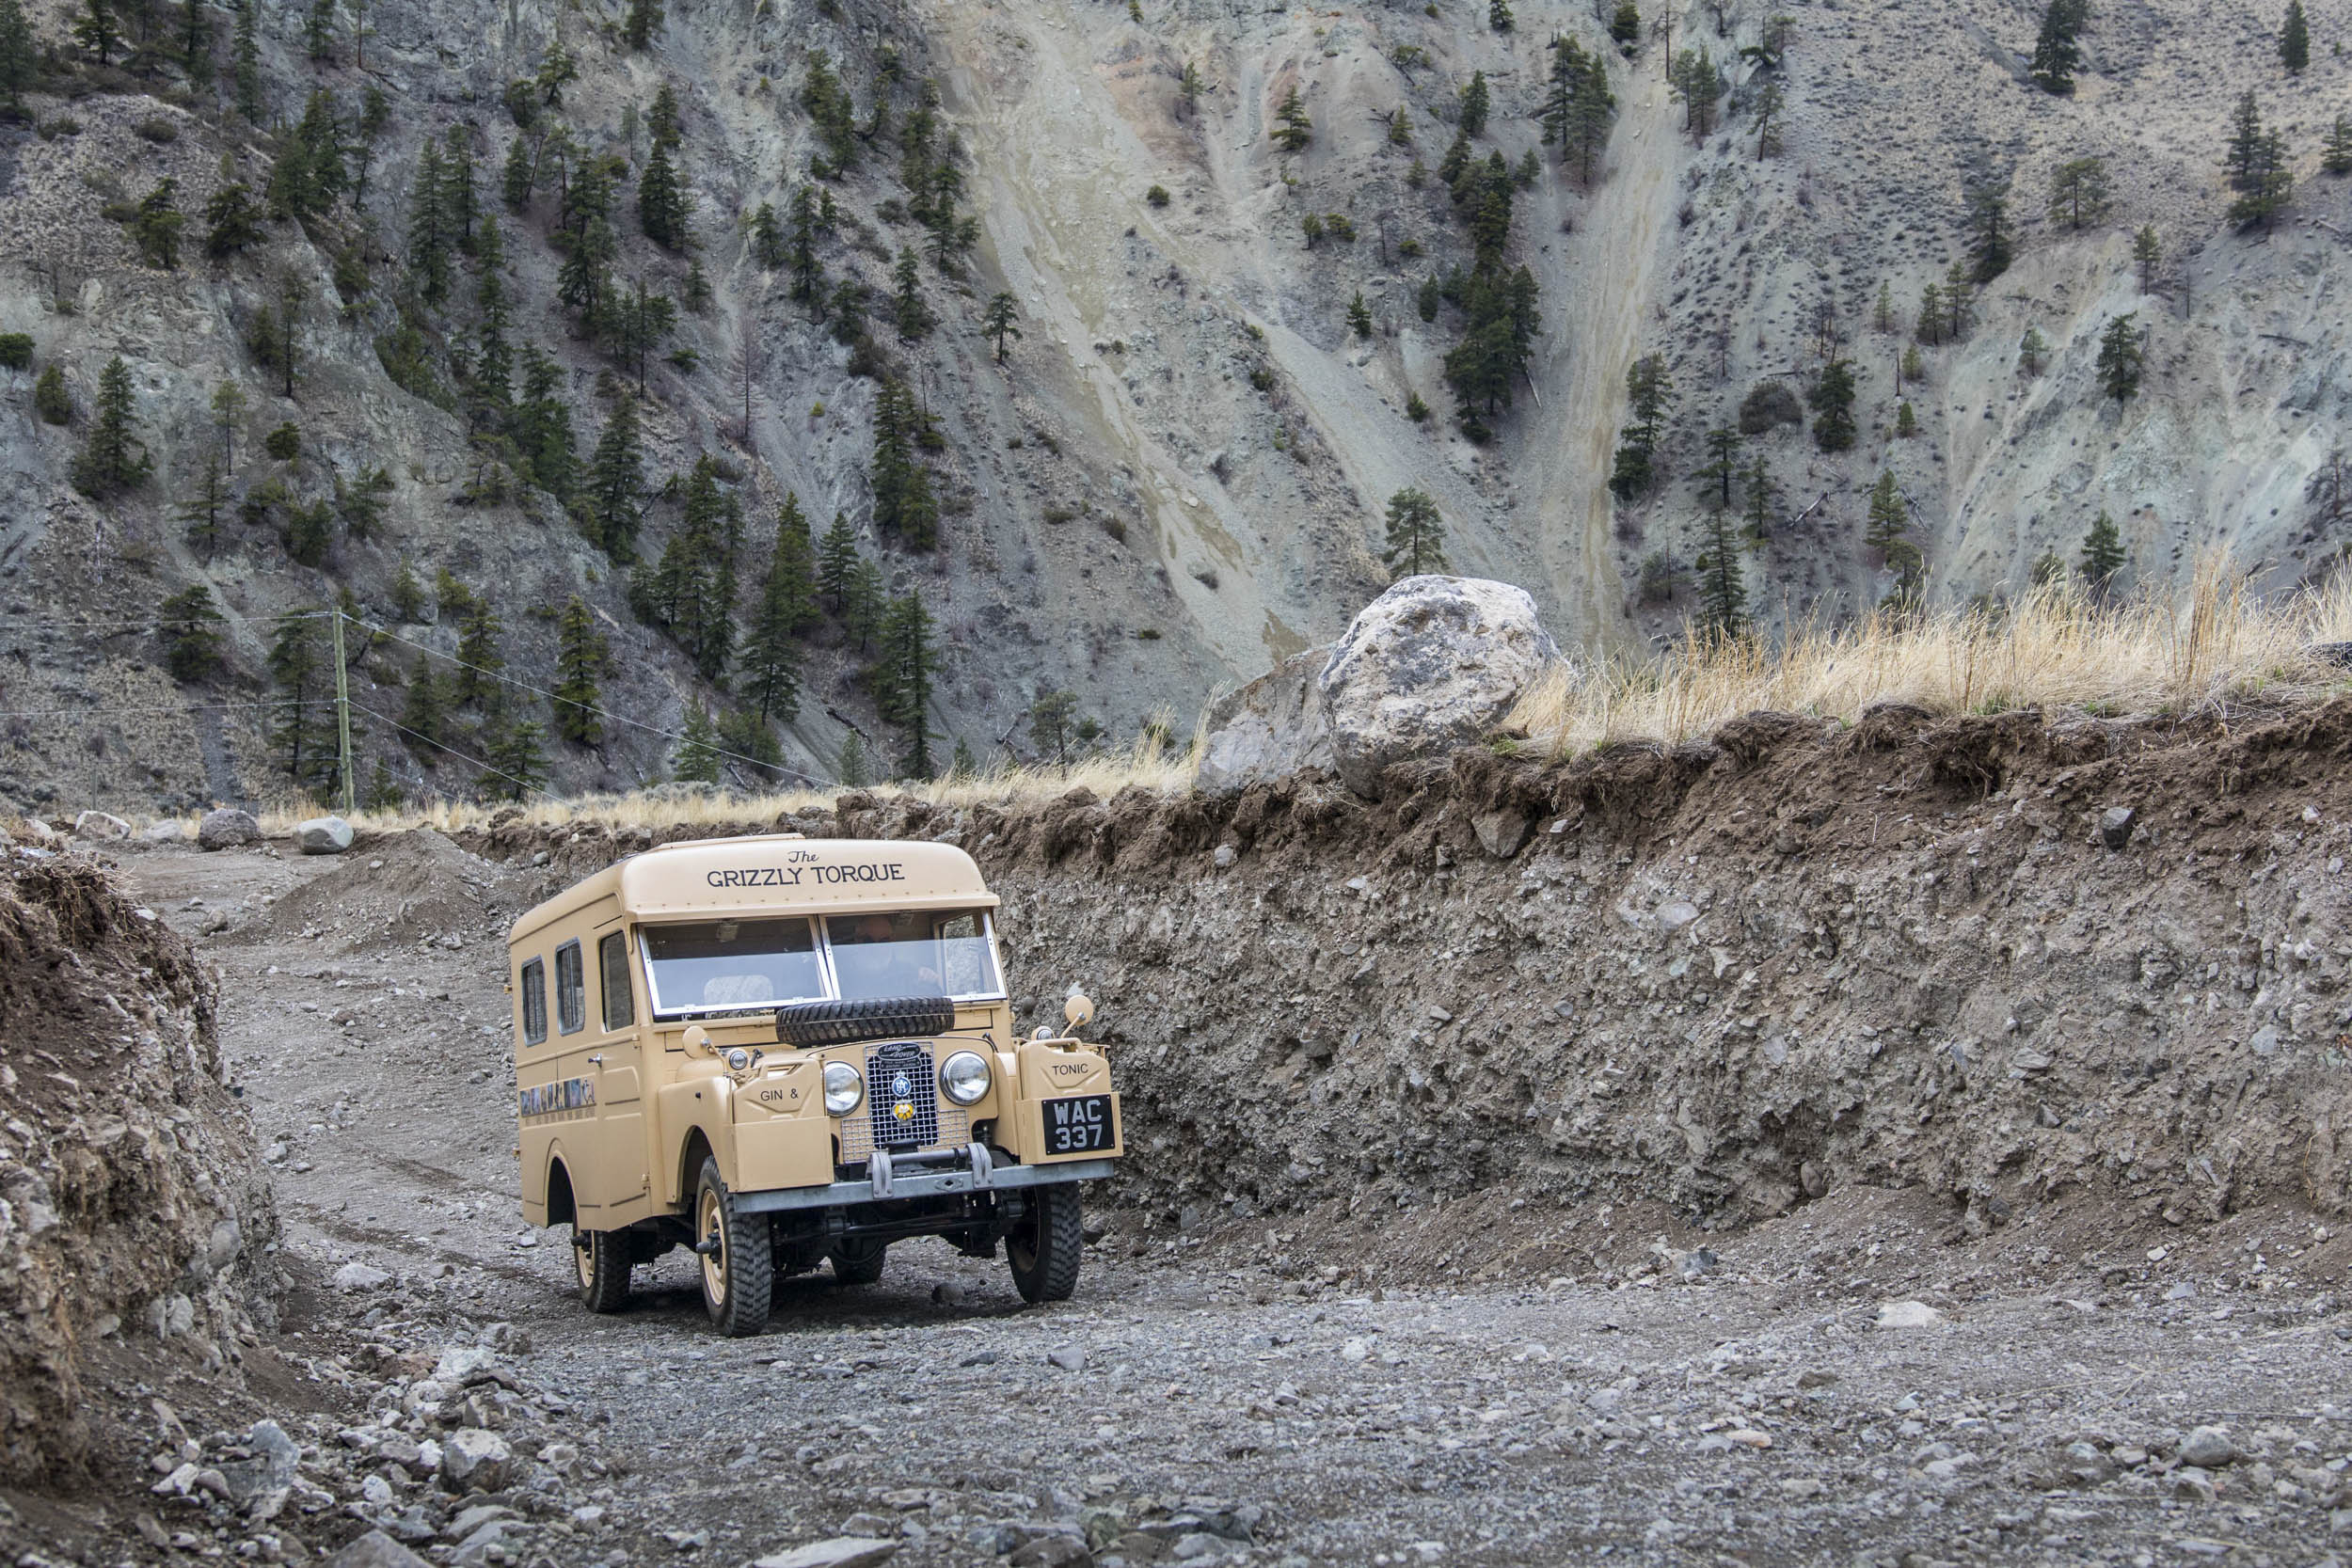 1957 Land Rover the Grizzly Torque climbing a mountain